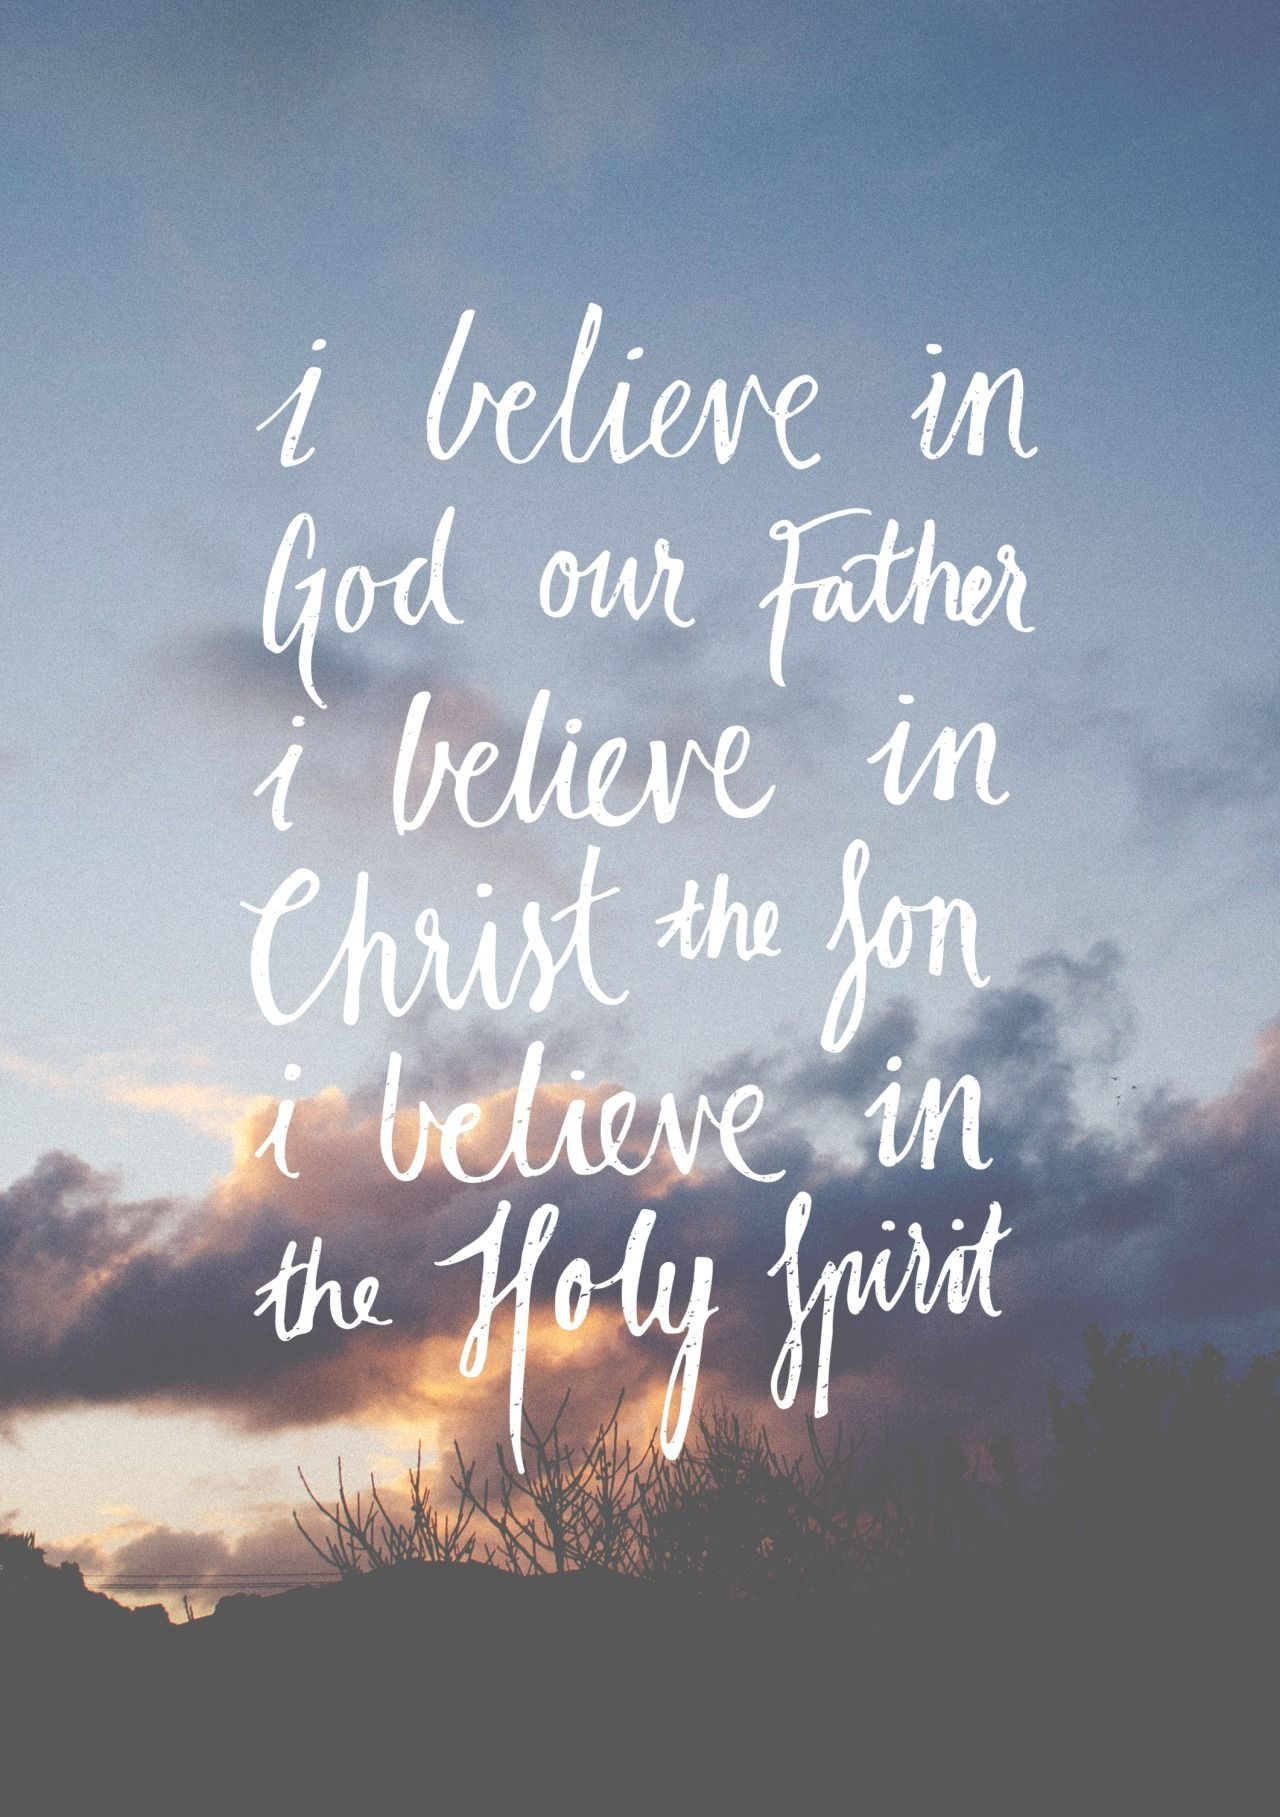 Worship Quotes Hillsong Worship  I Believe  God Thoughts  Pinterest  Lord